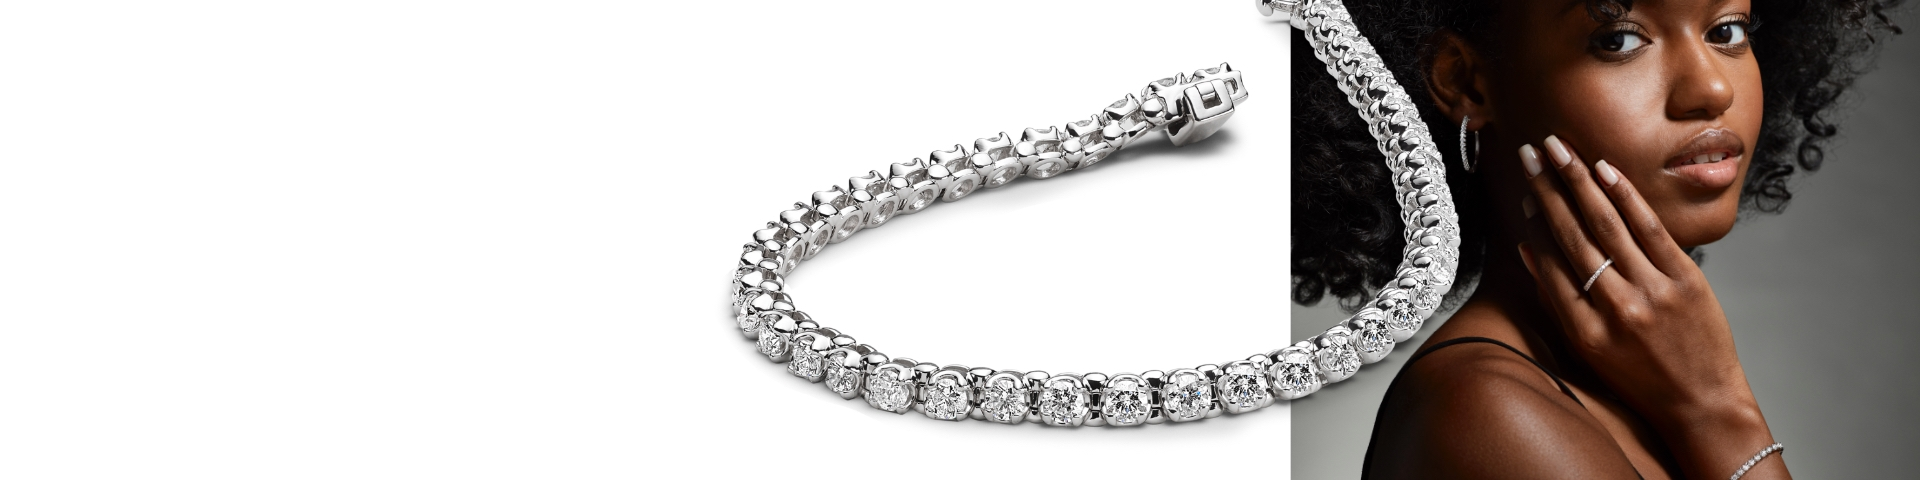 Woman wearing white gold and diamond tennis bracelet, hoop earrings, and ring. Shop all new jewelry arrivals at Jared.